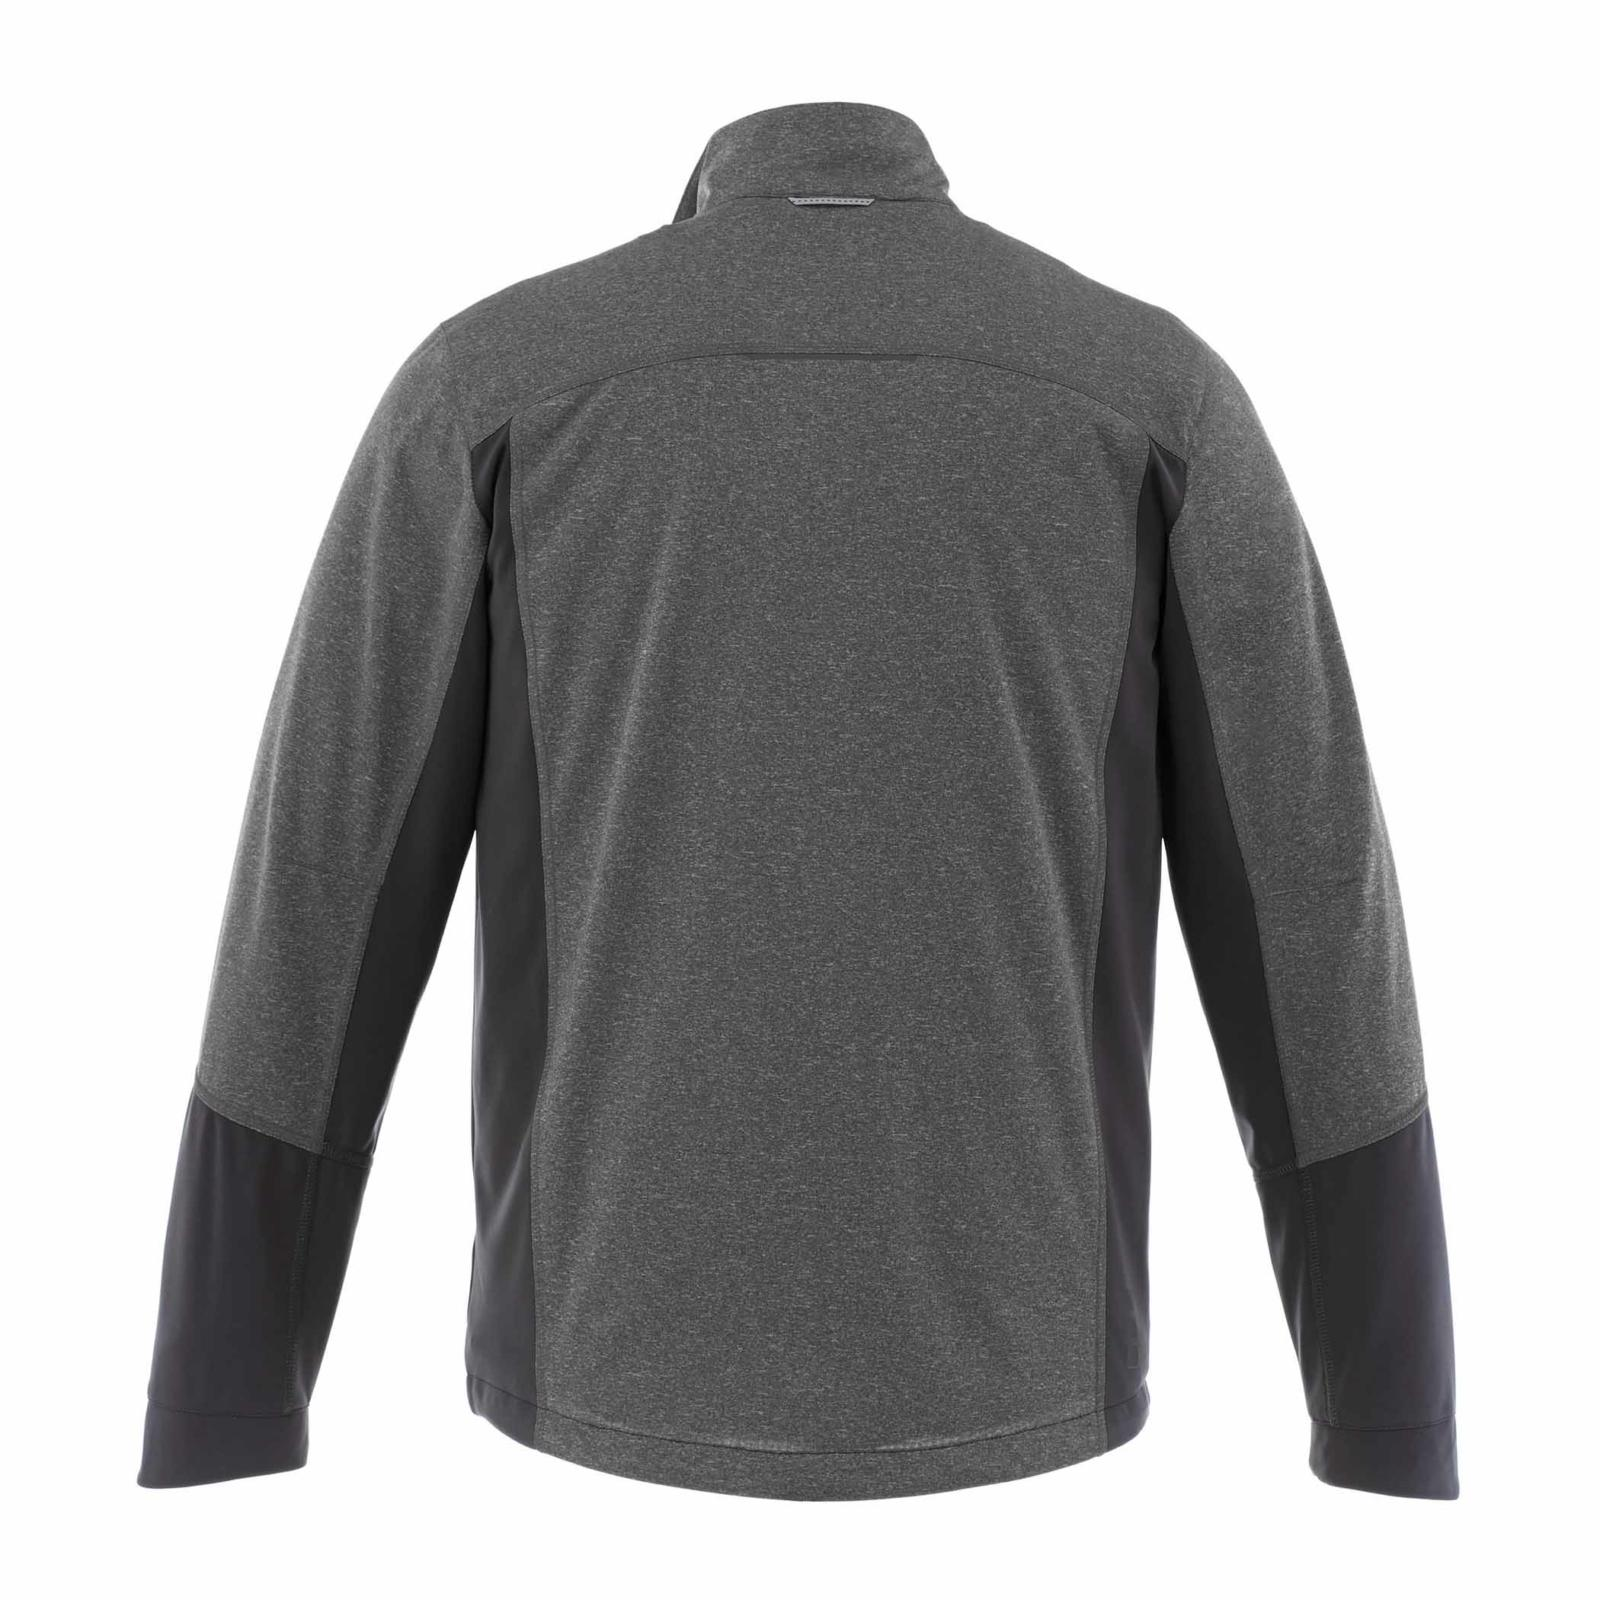 Verdi Hybrid Softshell Jacket - Mens